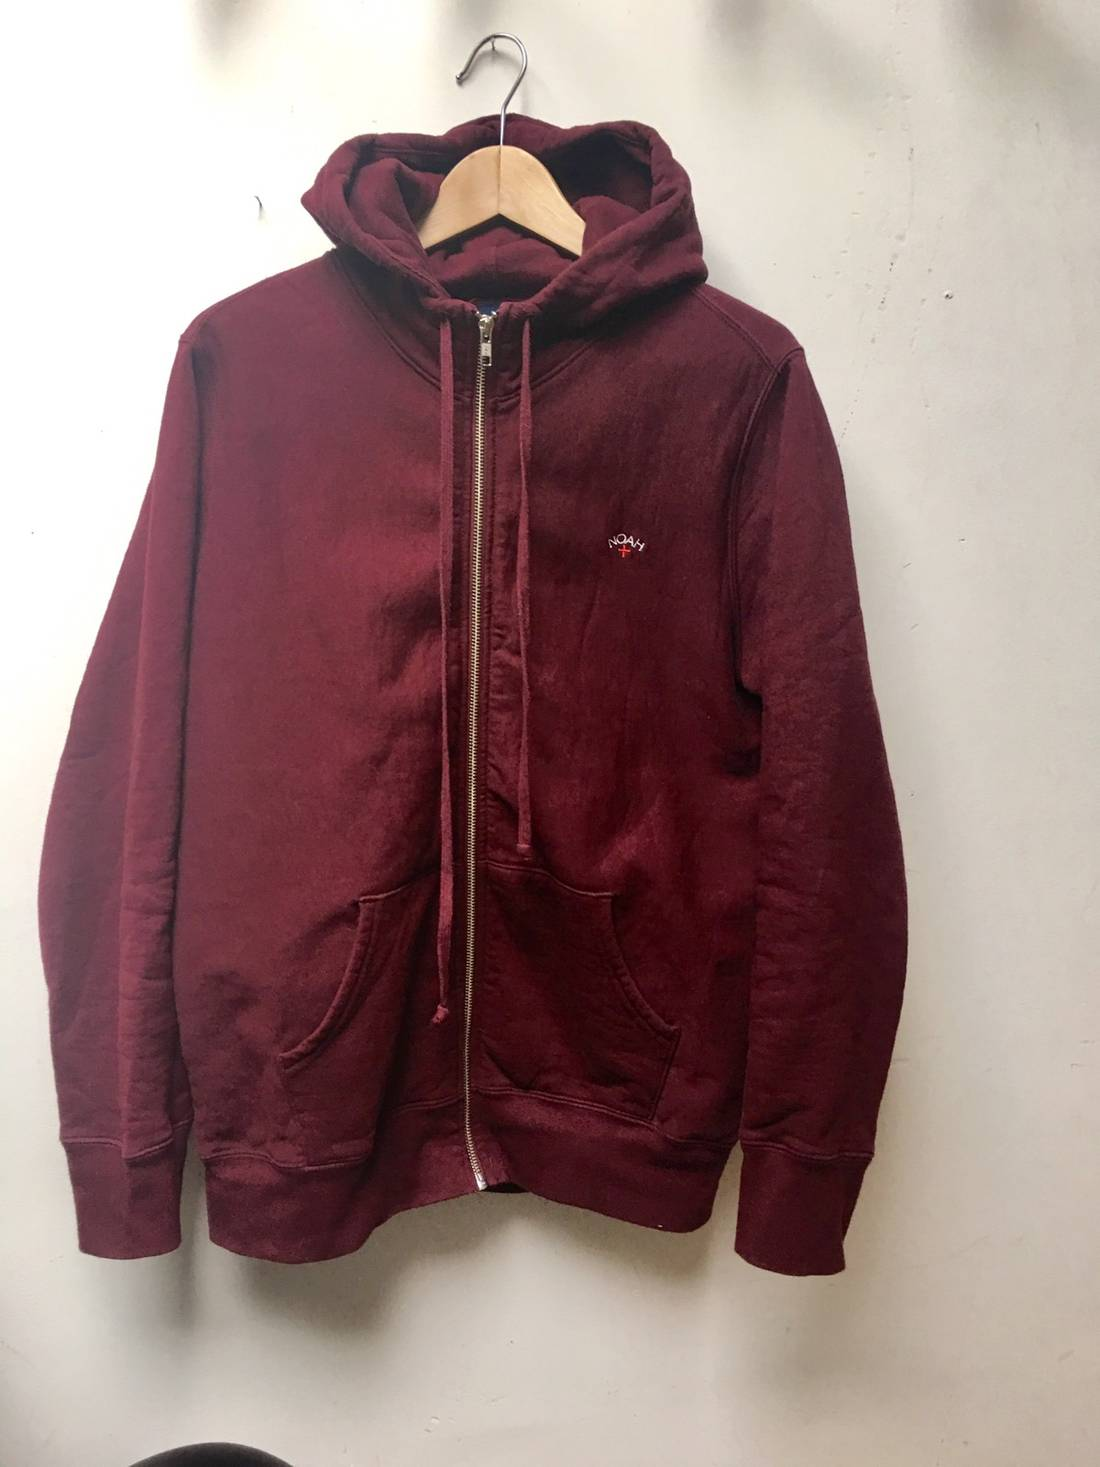 Noah Burgundy Hoodie Sweater Zipped Size m - Sweatshirts & Hoodies ...